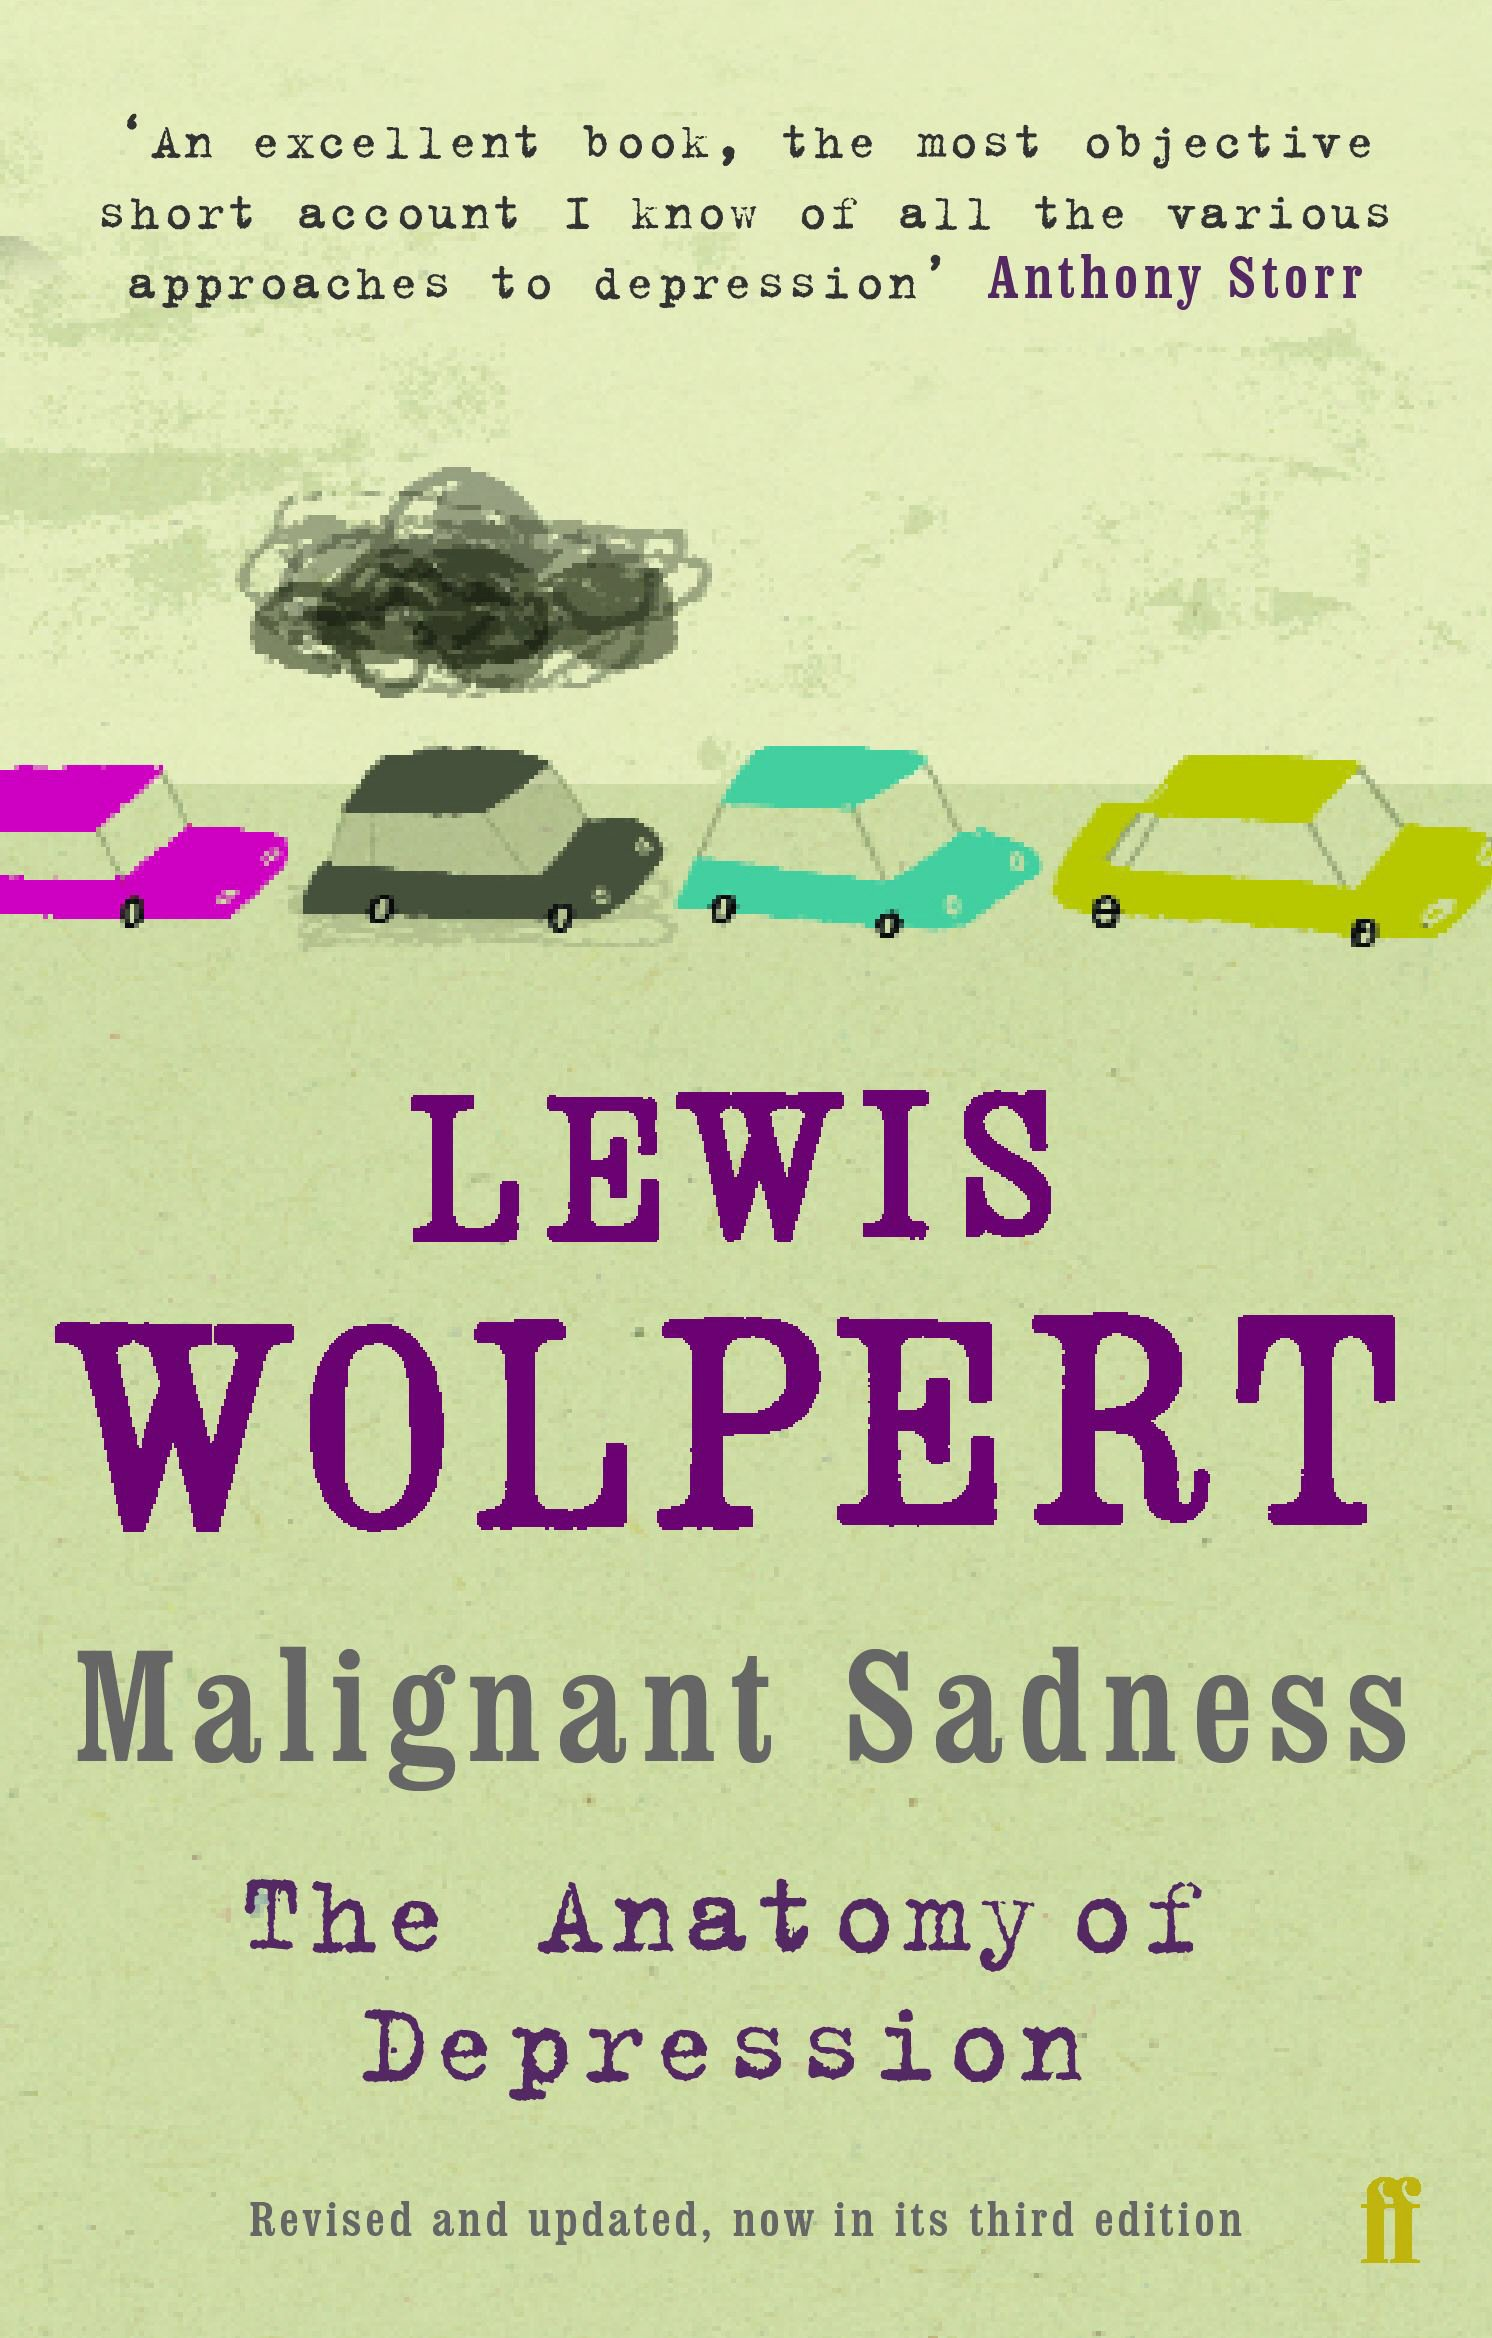 Malignant Sadness: Lewis Wolpert: 9780571230785: Amazon.com: Books